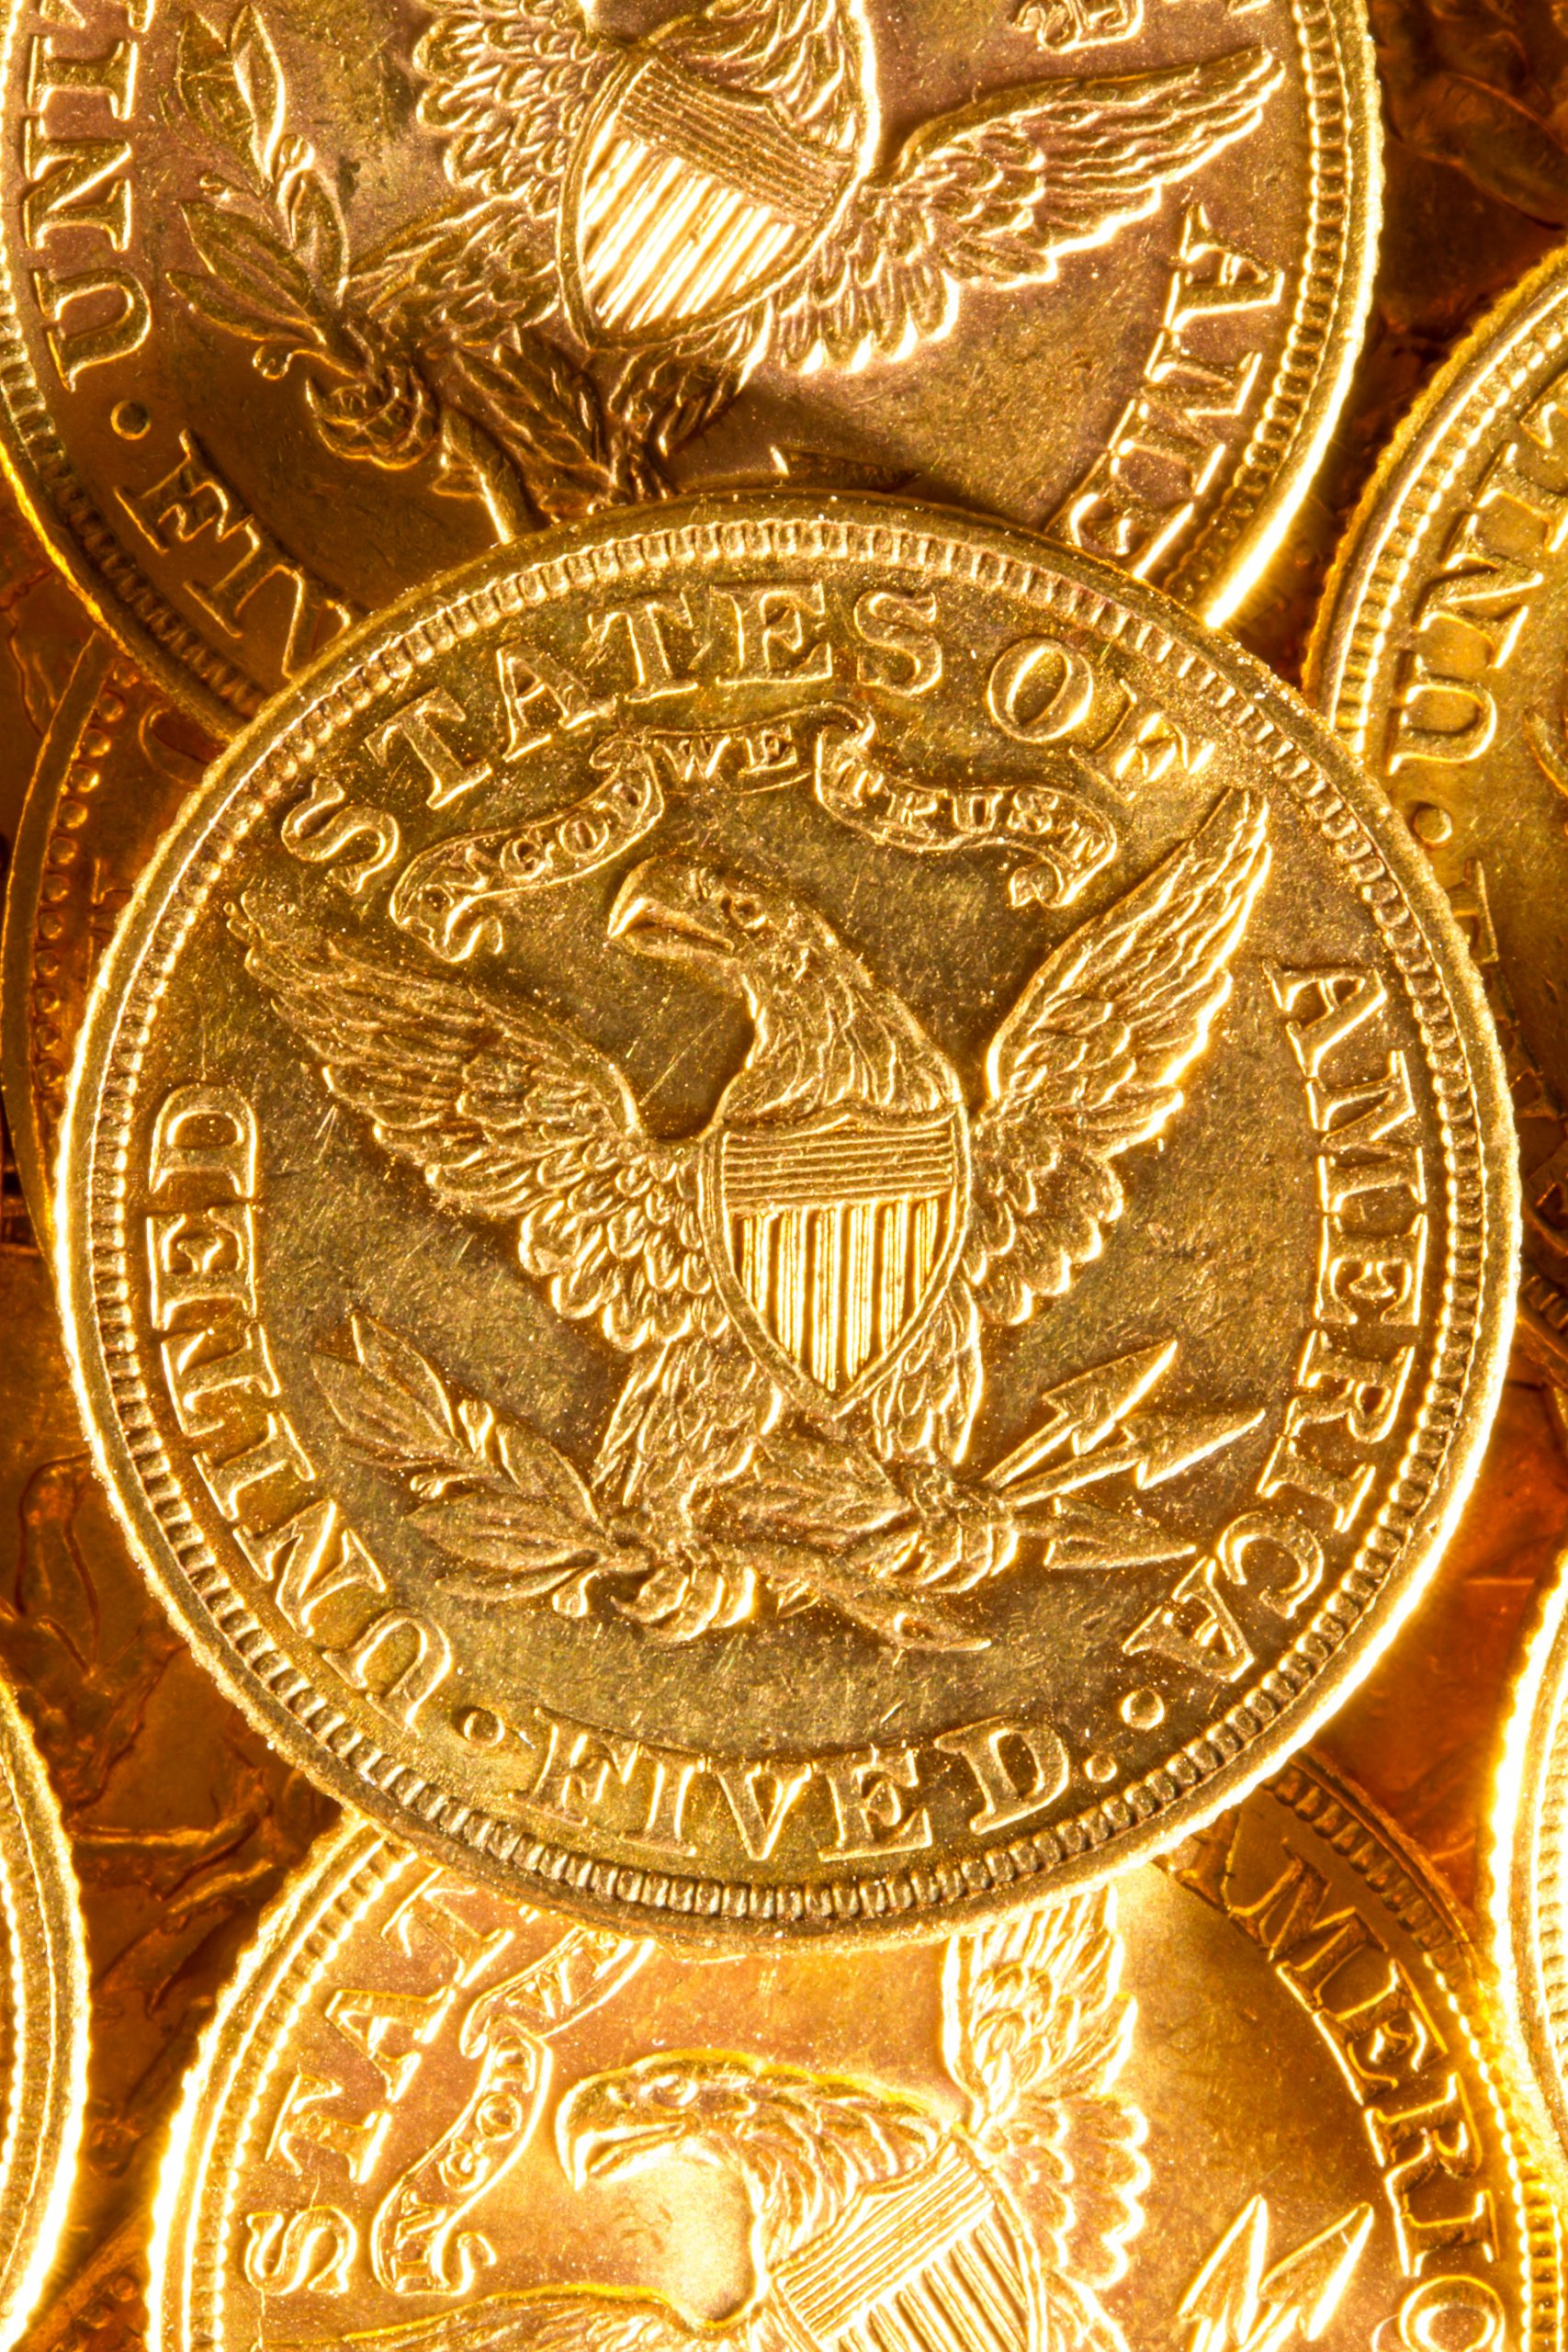 gold American eagle coins 1-10 ounce